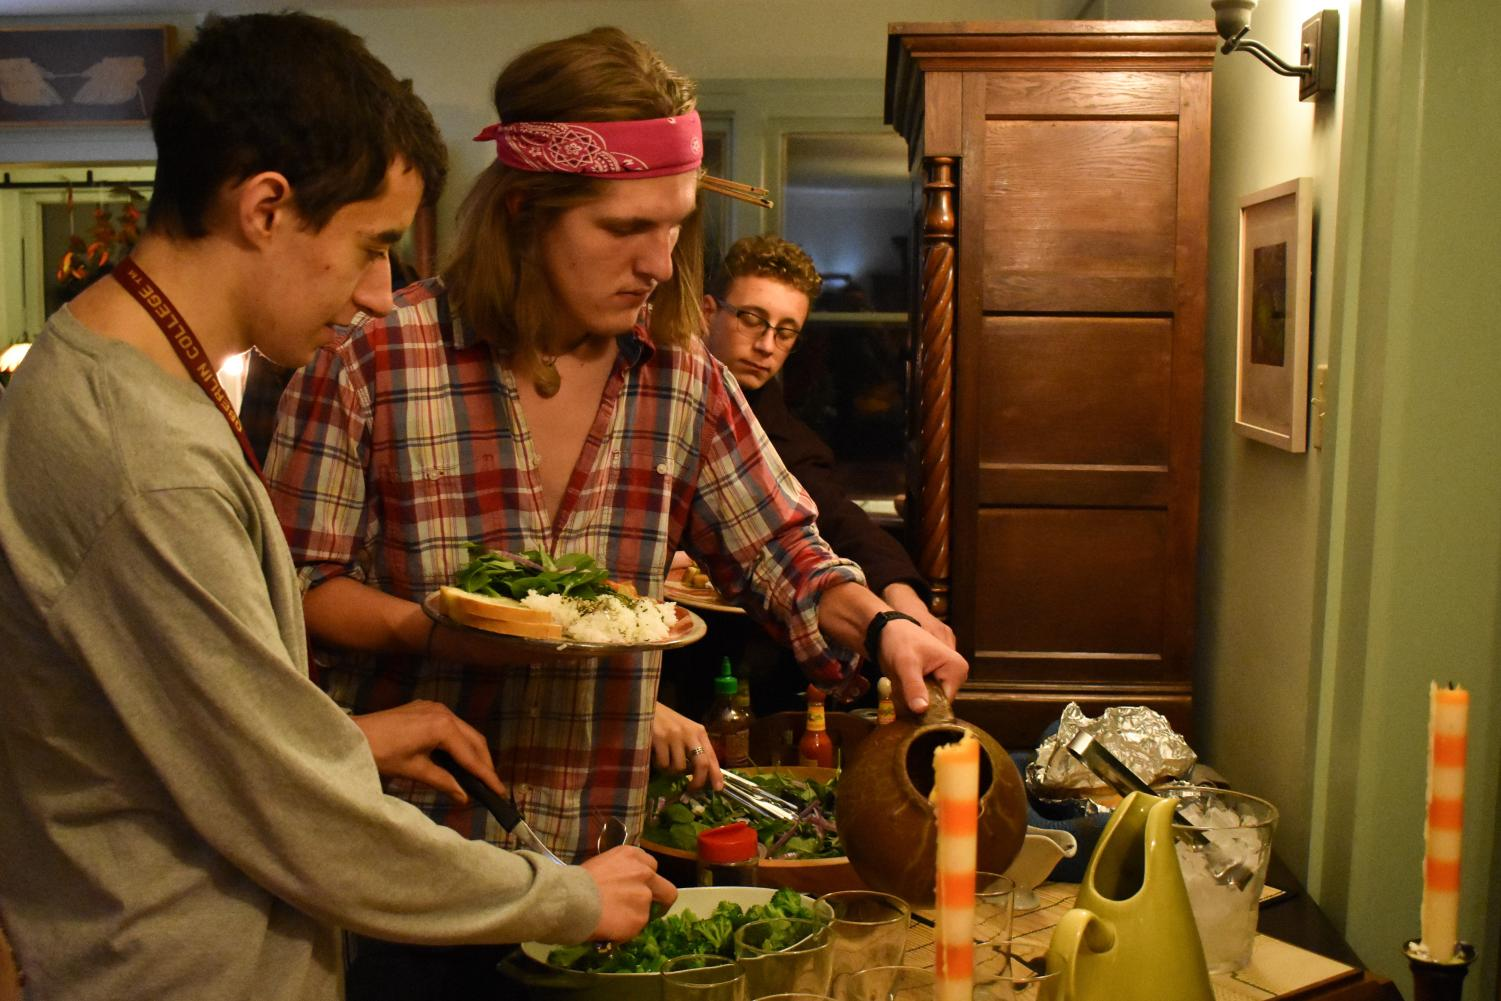 Students serve themselves at a dialogue dinner hosted at David Dorsey's home as part of the Barefoot Dialogue program.